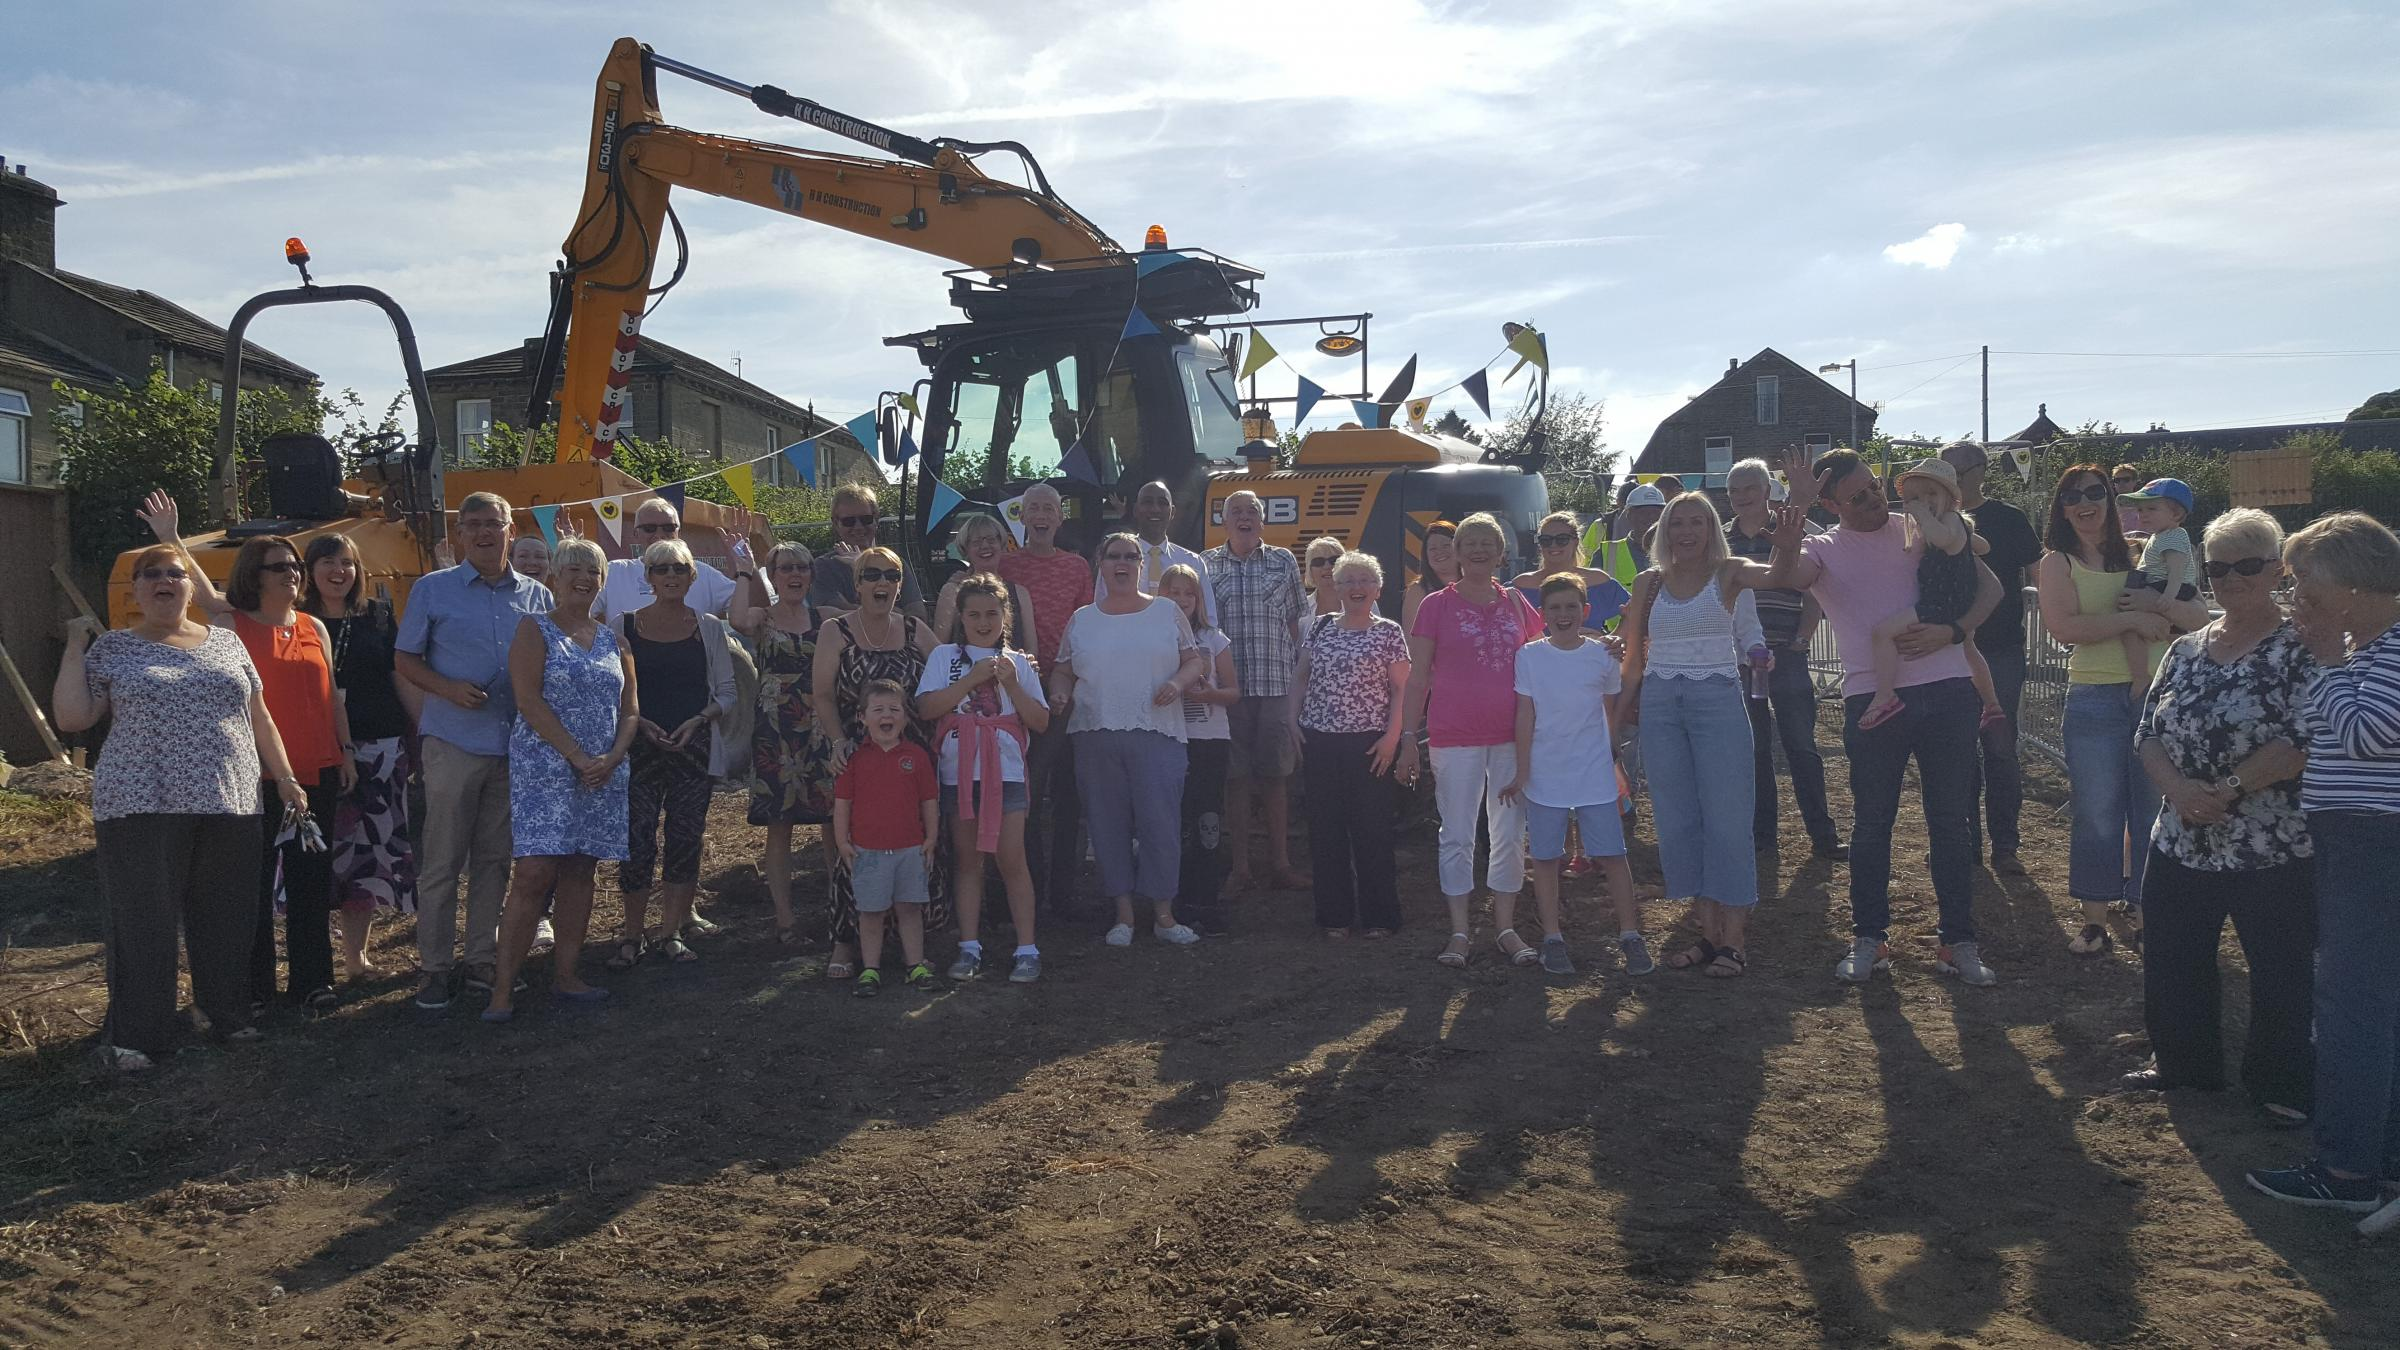 Villagers gather for the ground-breaking ceremony at the site of the new Cullingworth Village Hall